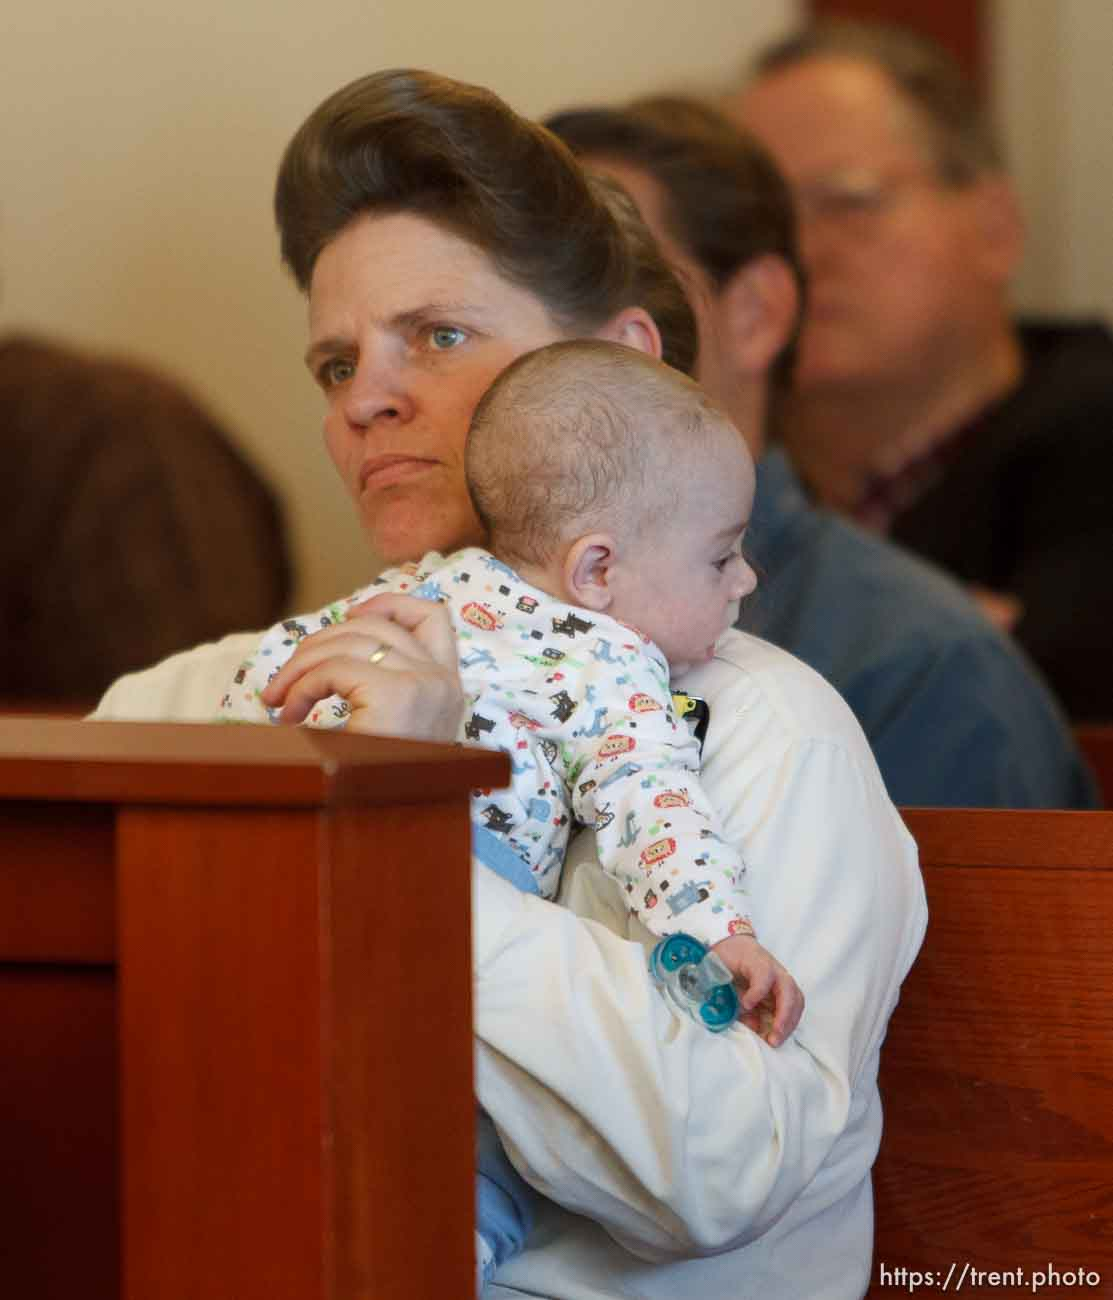 Trent Nelson   The Salt Lake Tribune Joanna Jessop listens while holding an infant during a court hearing on the polygamous UEP land trust, Friday April 12, 2013 in Salt Lake City.